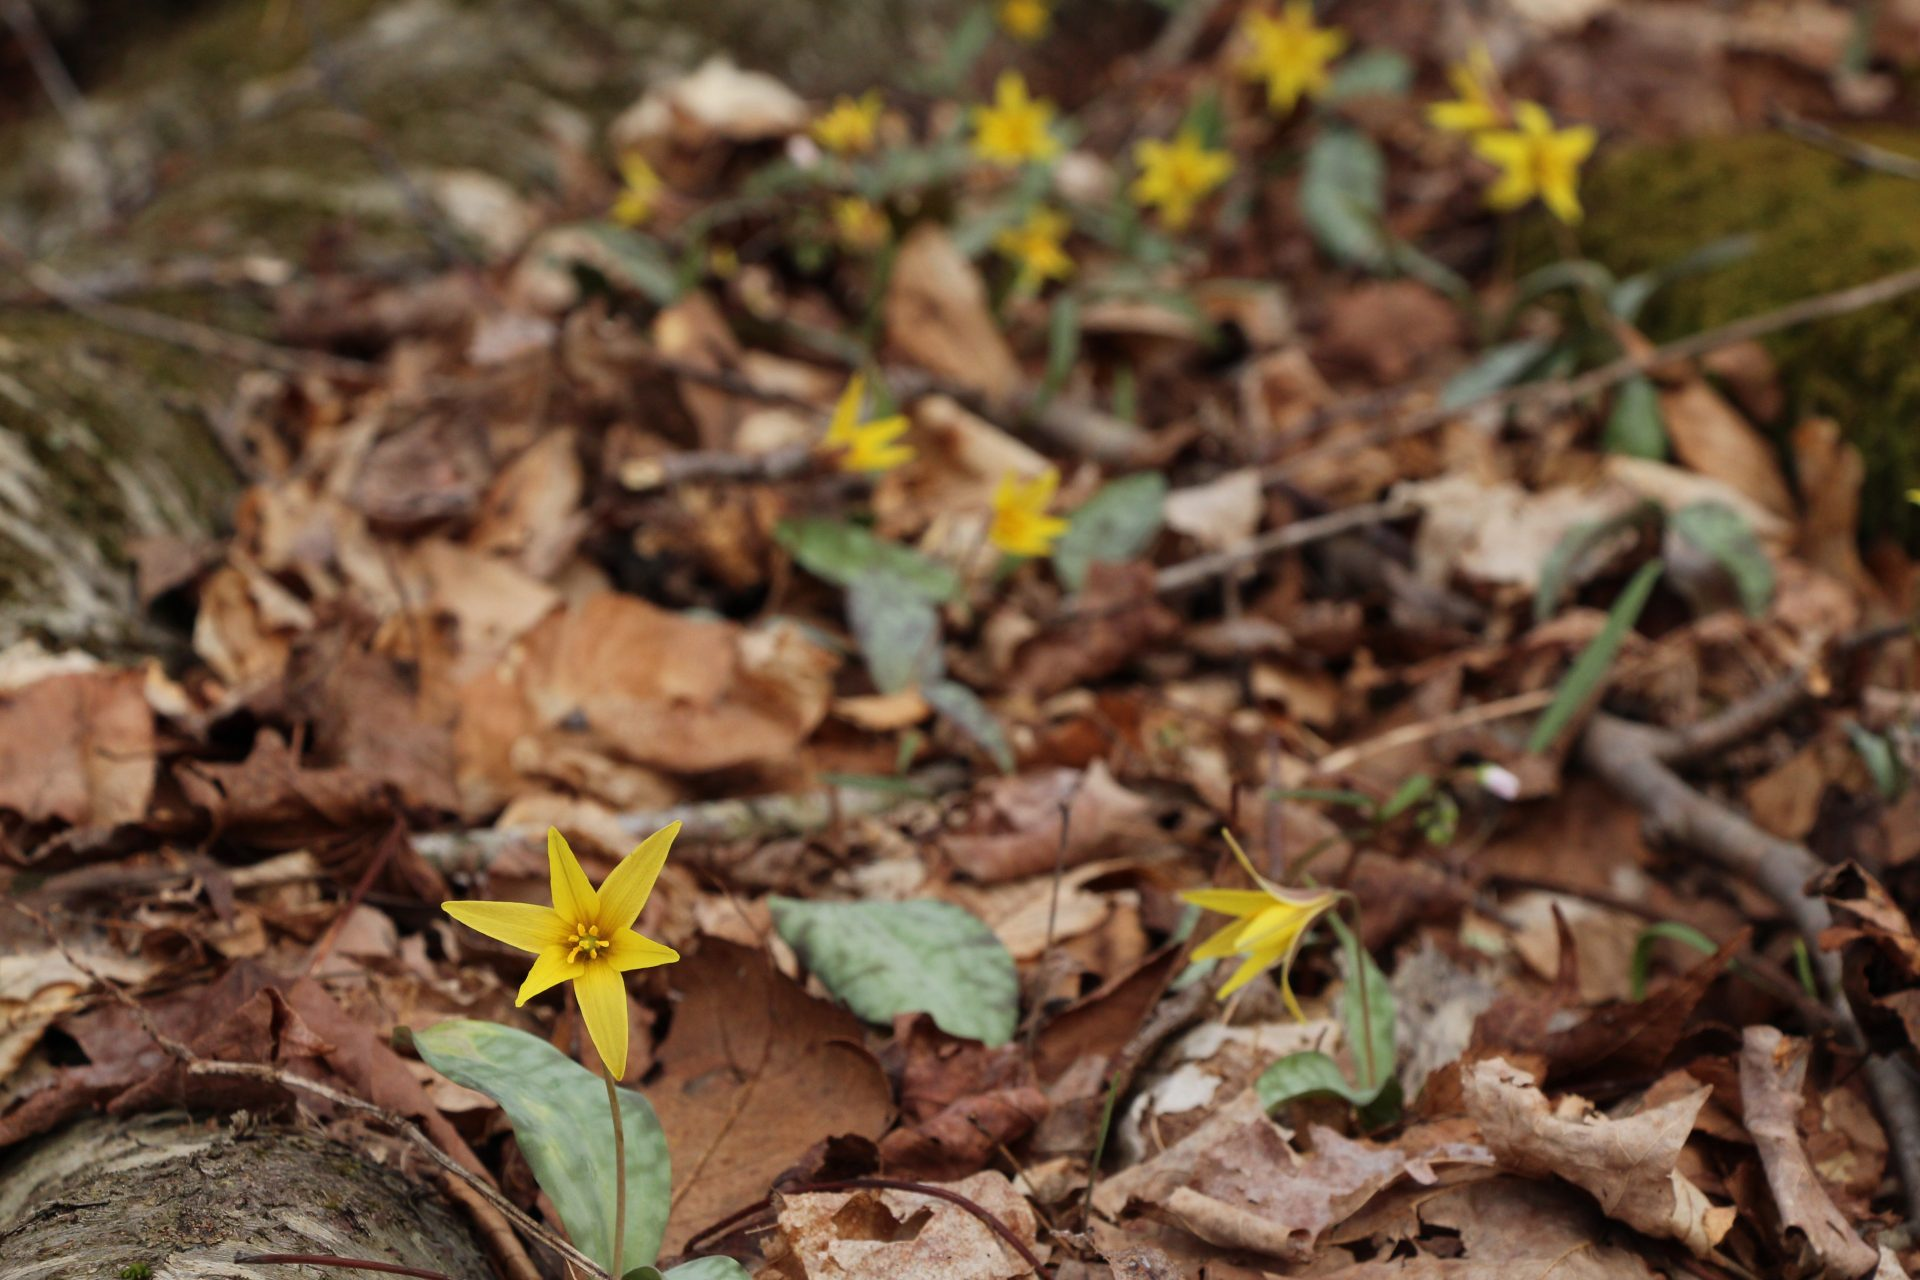 The flower of the Golden Star Lily is much showier than its common counterparts, the Yellow Trout Lily and the White Trout Lily. It is endangered in Ohio, found only in two locations across the state.